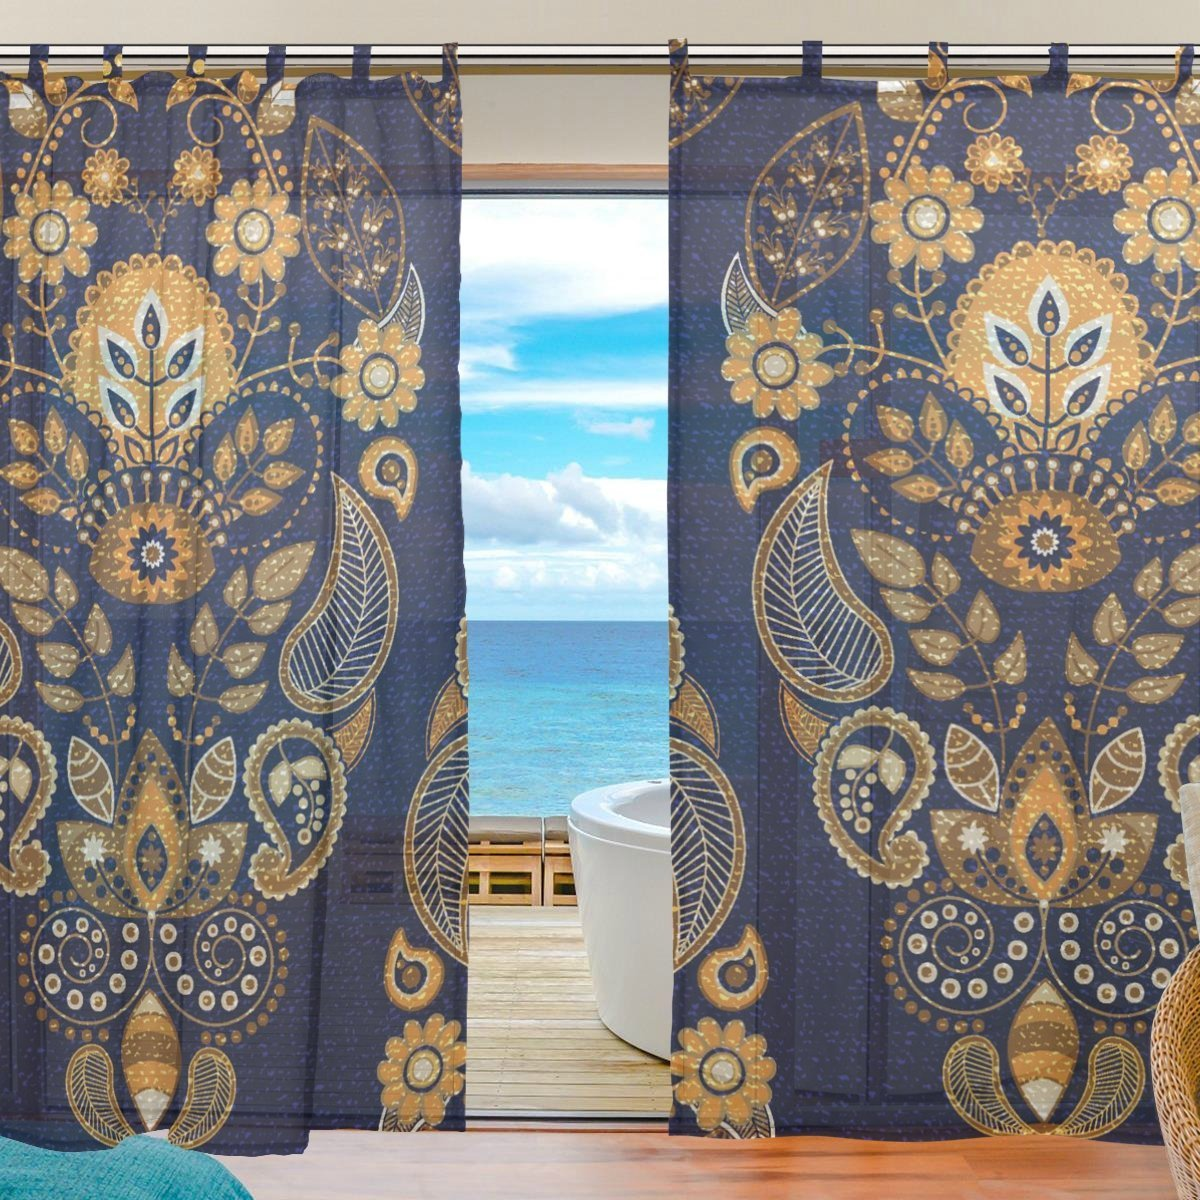 Cheap Bedroom Curtain Panels, find Bedroom Curtain Panels deals on ...